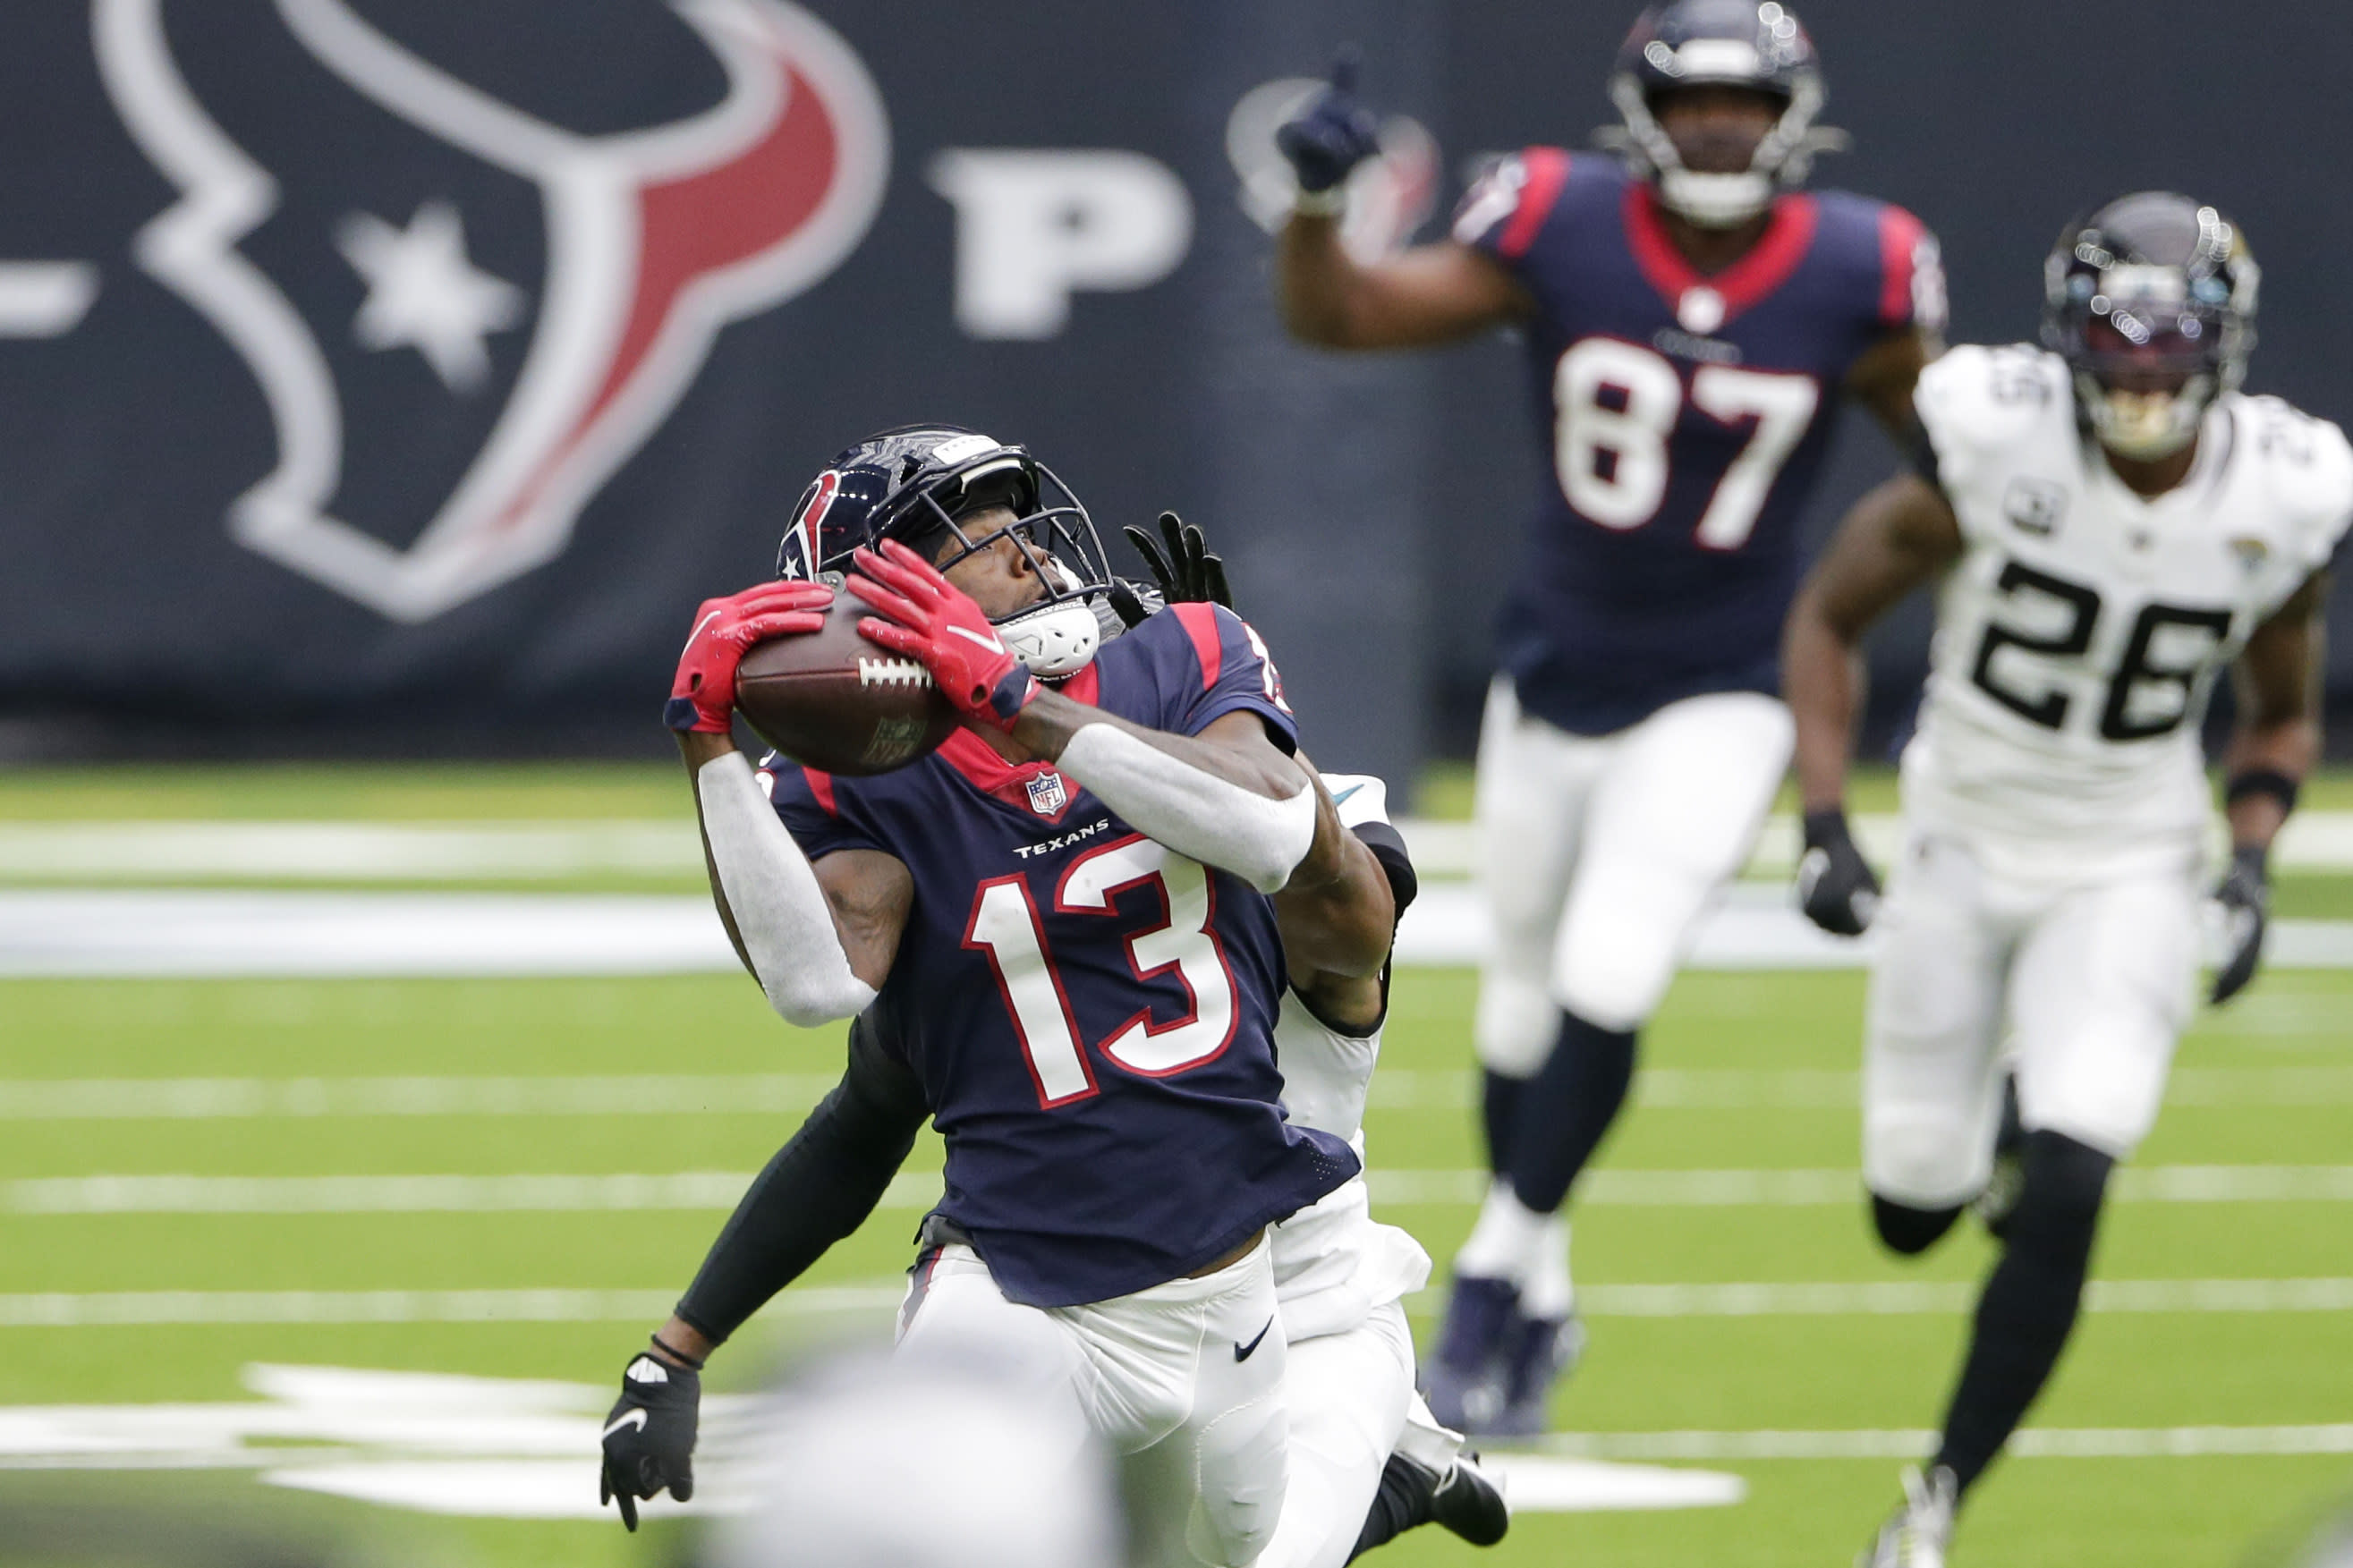 Houston Texans wide receiver Brandin Cooks (13) makes a catch against the Jacksonville Jaguars during the first half of an NFL football game Sunday, Oct. 11, 2020, in Houston. (AP Photo/Michael Wyke)